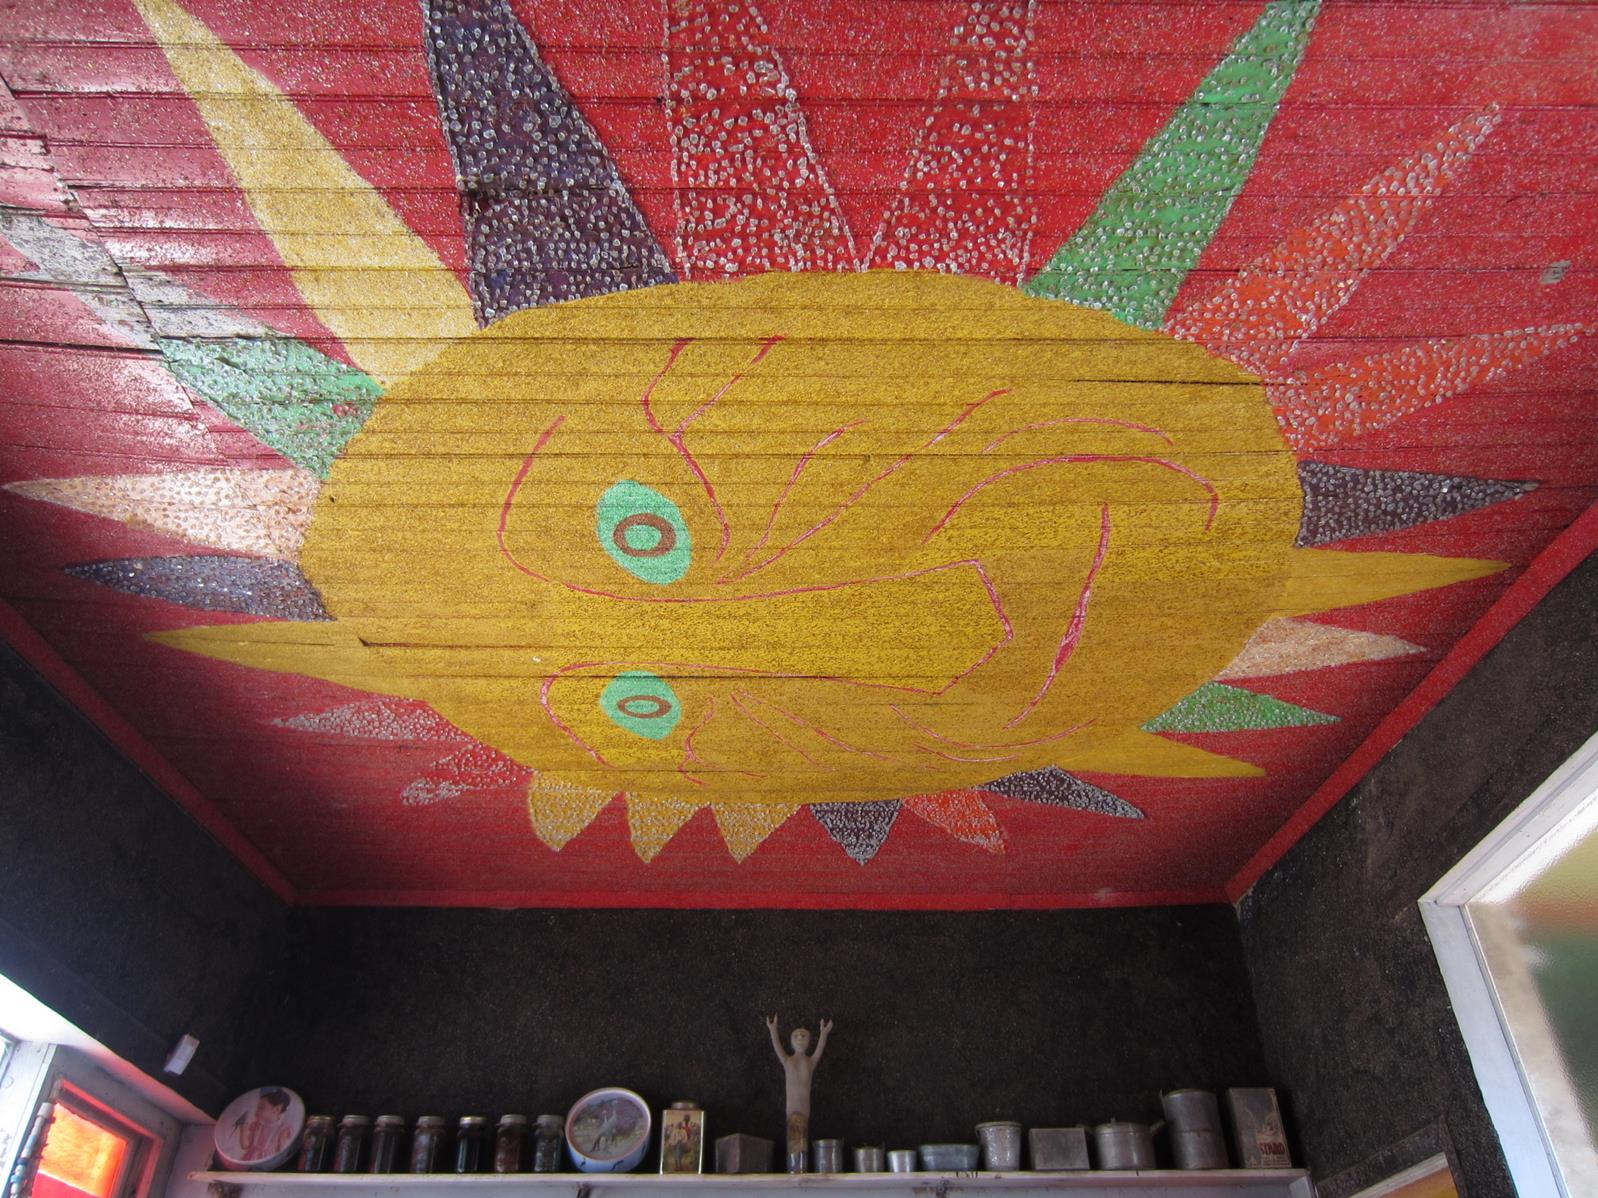 The ceiling of the pantry was brightly painted with a sun face.